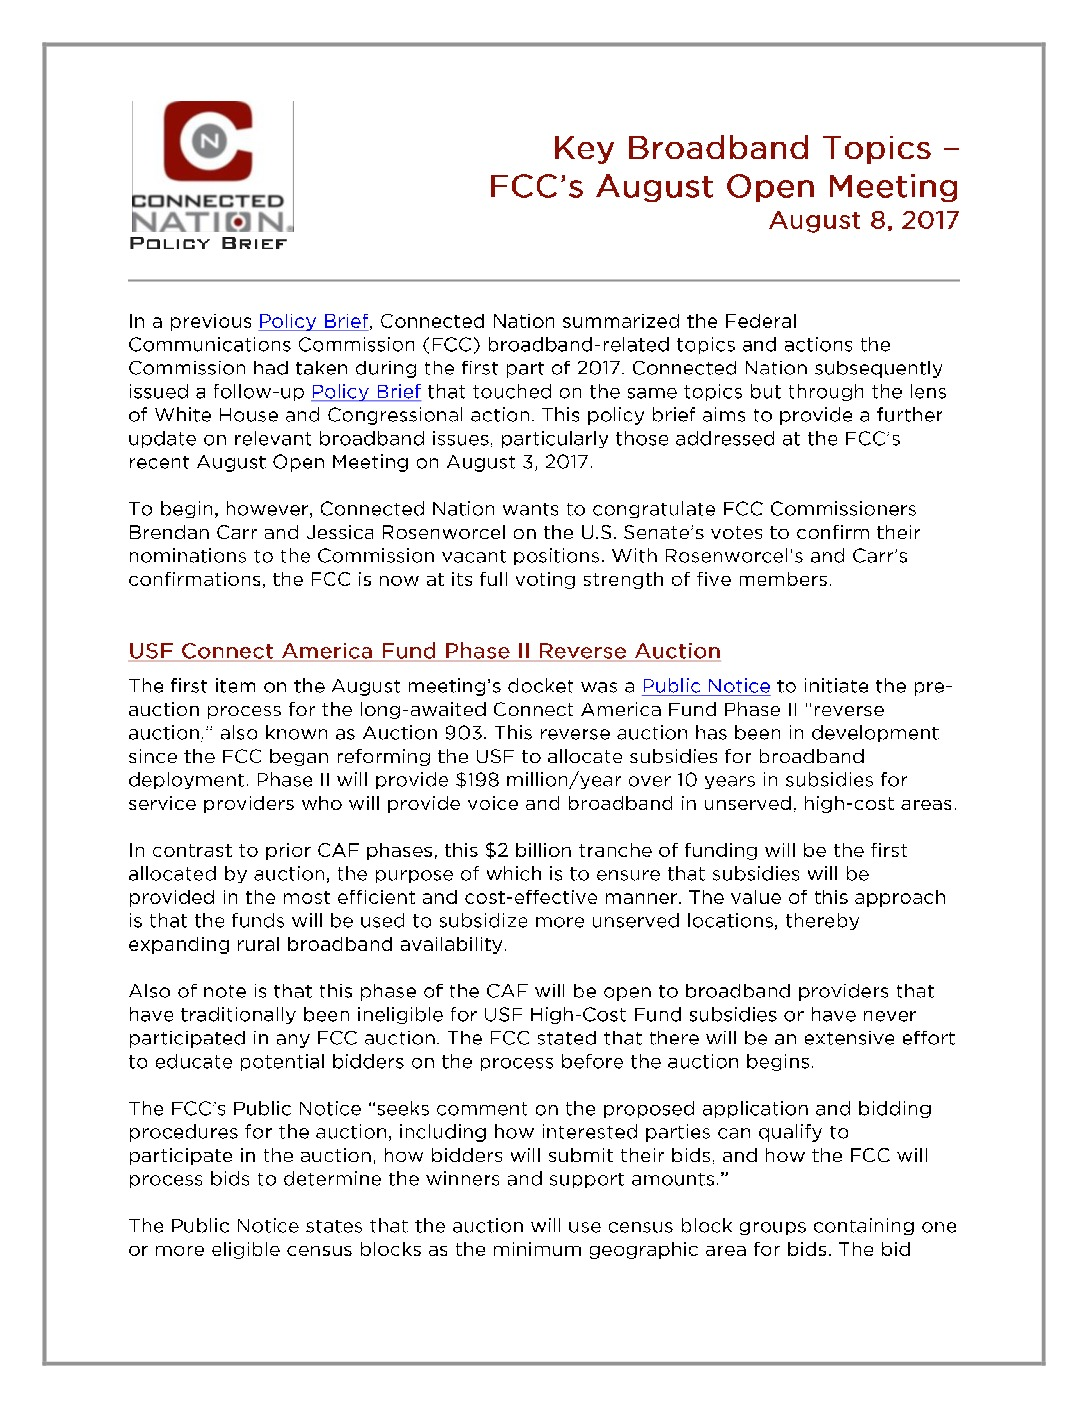 FCC's Open August Meeting